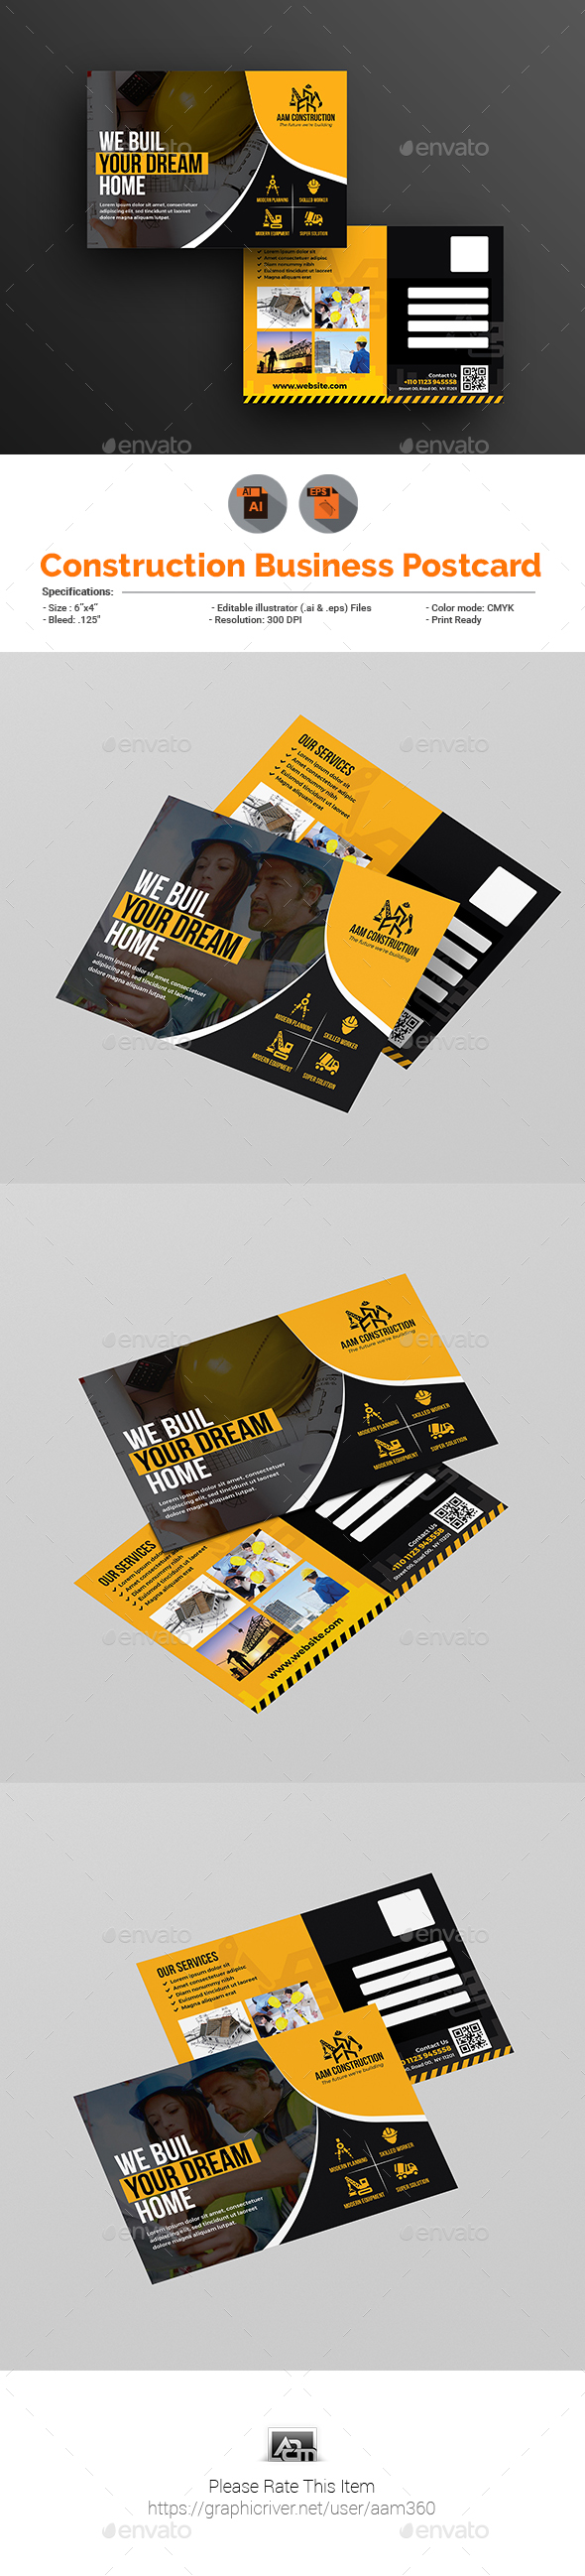 Construction Firm Postcard Template - Cards & Invites Print Templates